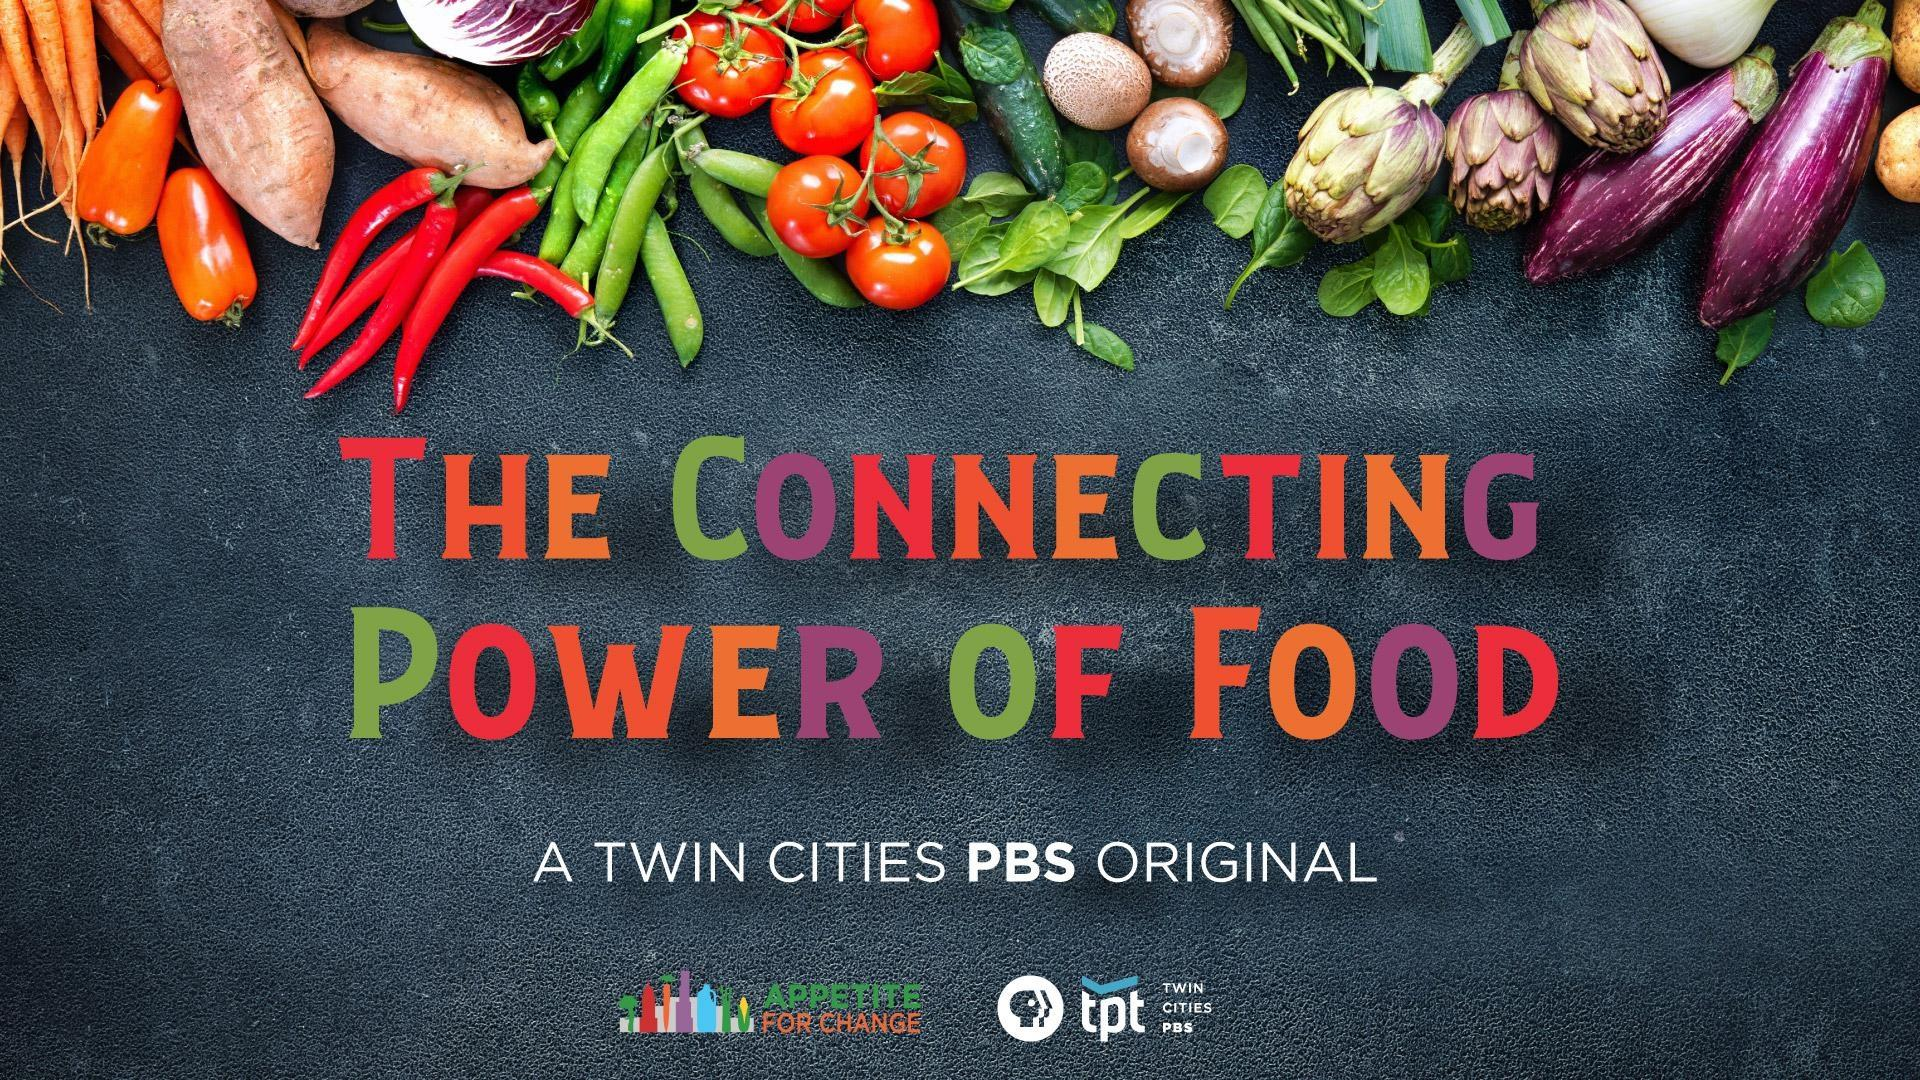 The Connecting Power of Food